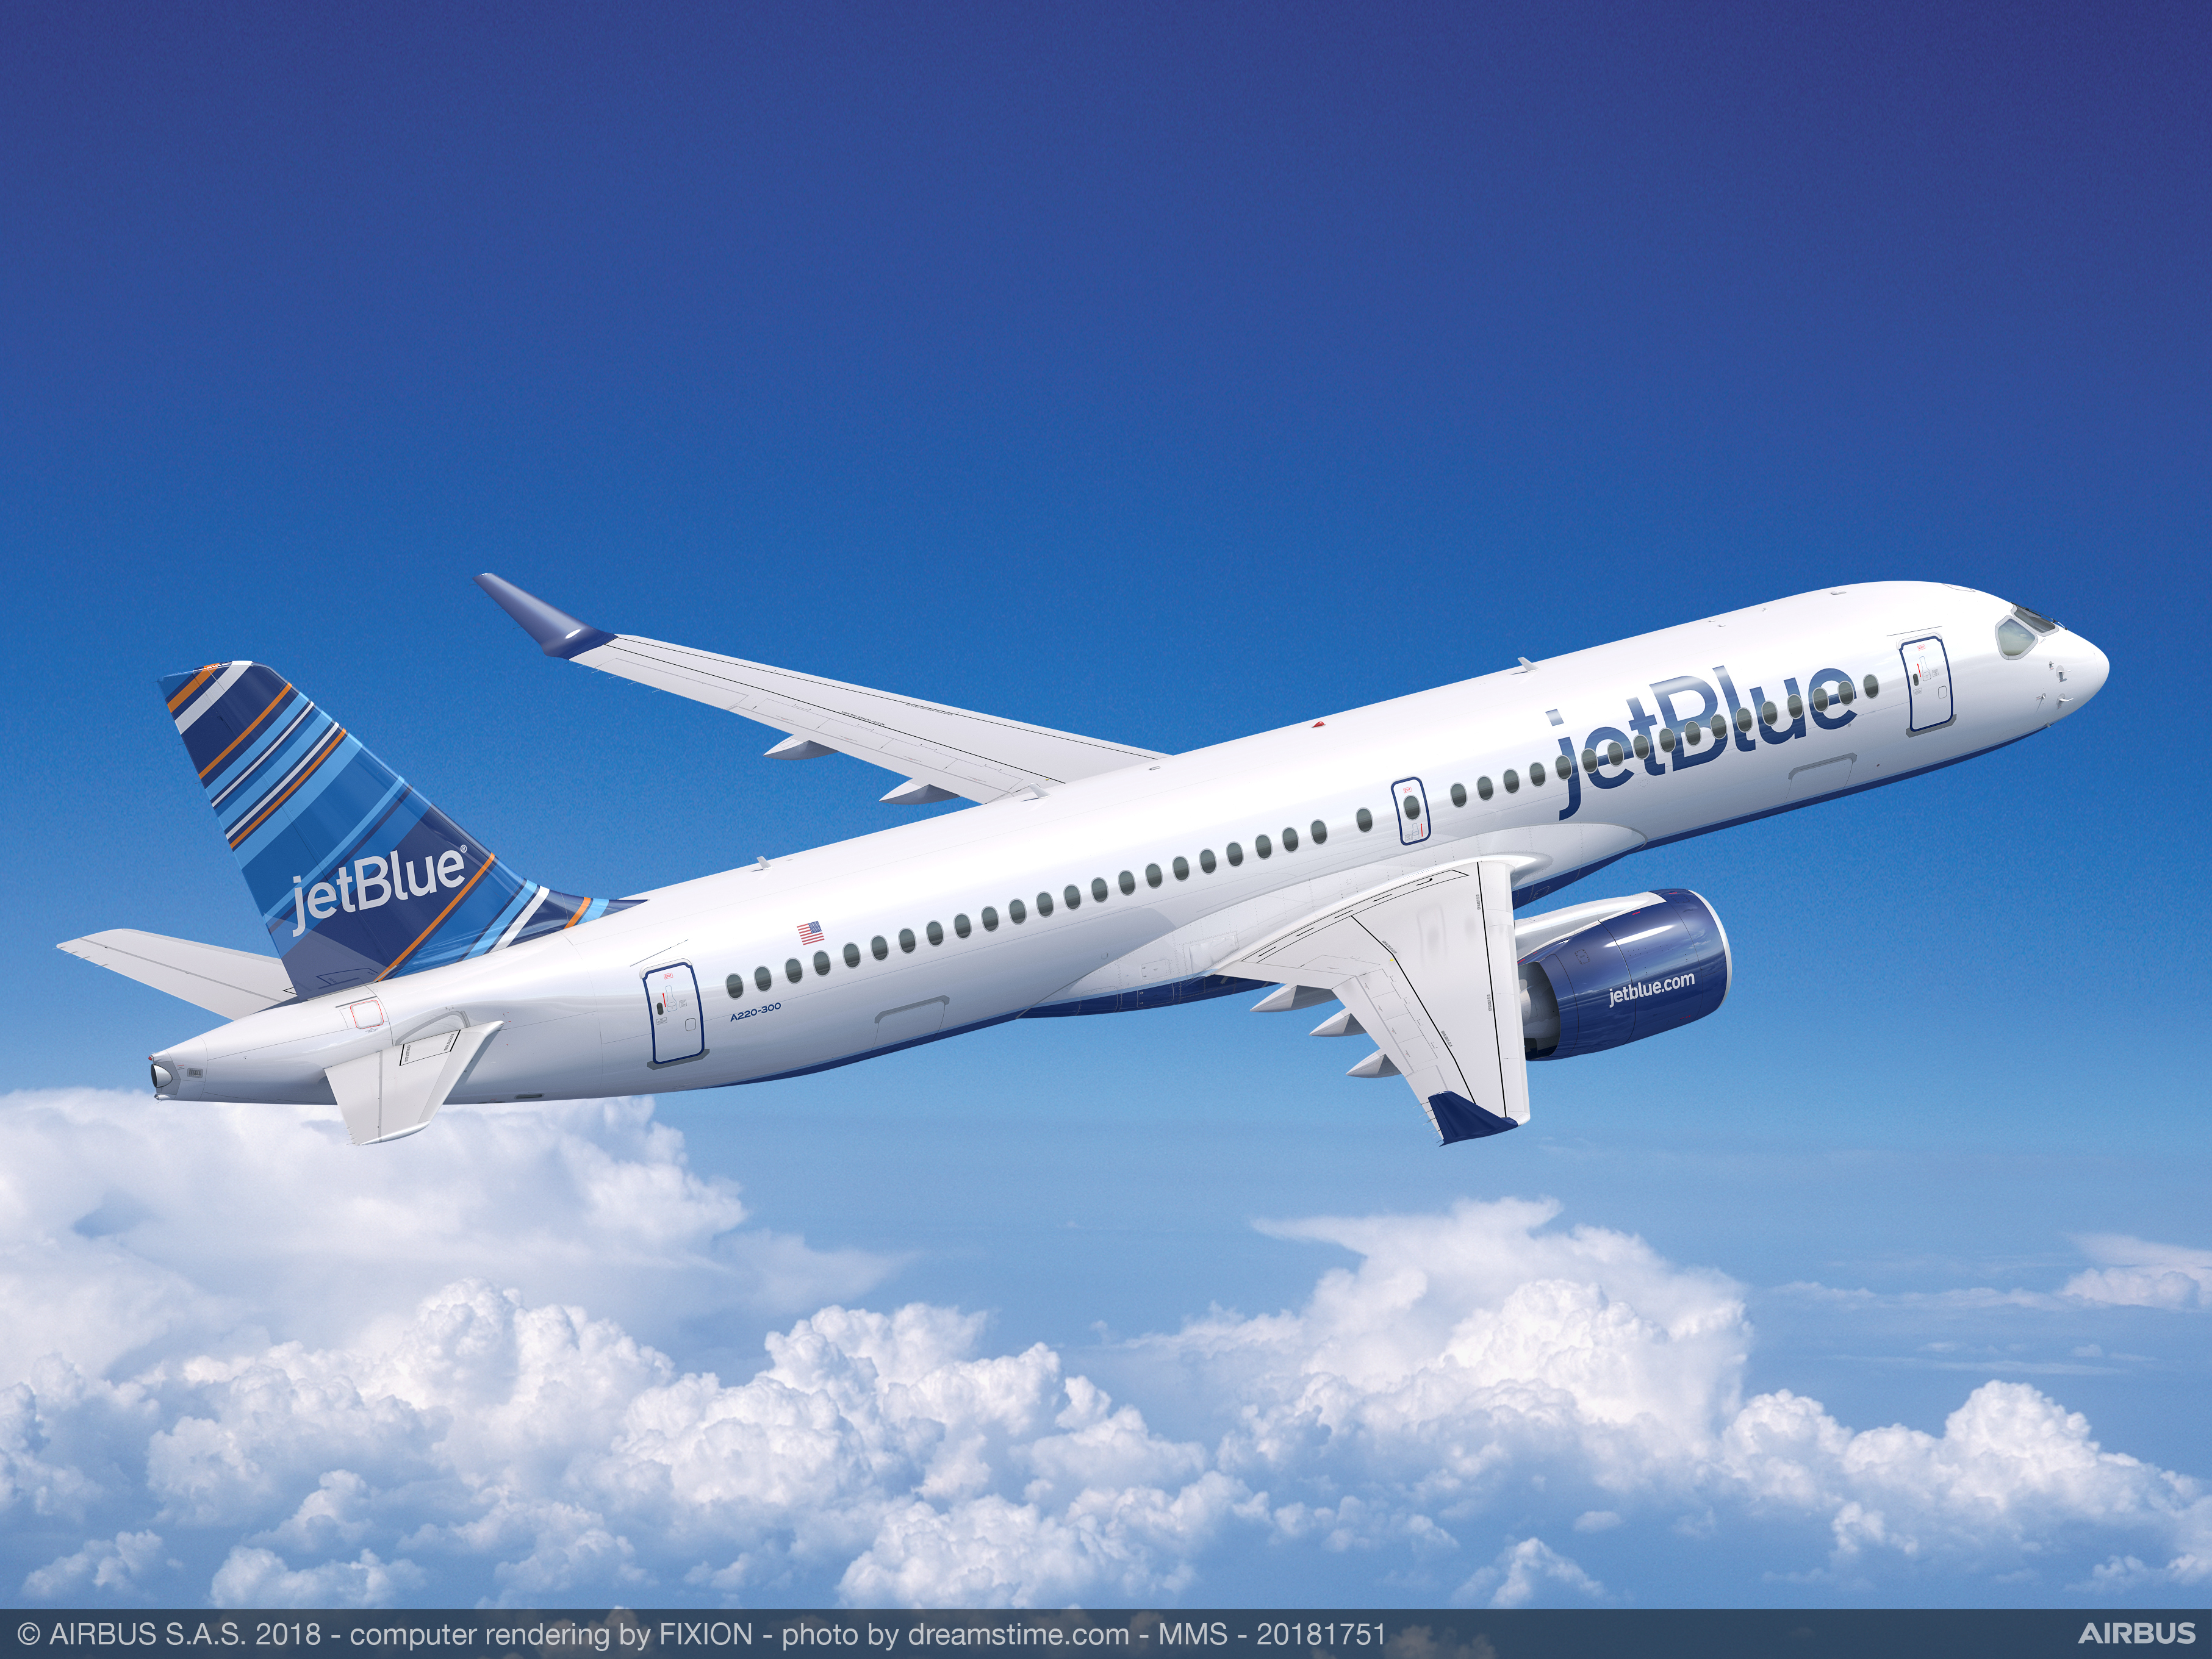 jetblue selects airbus a220 300 as key component of its next